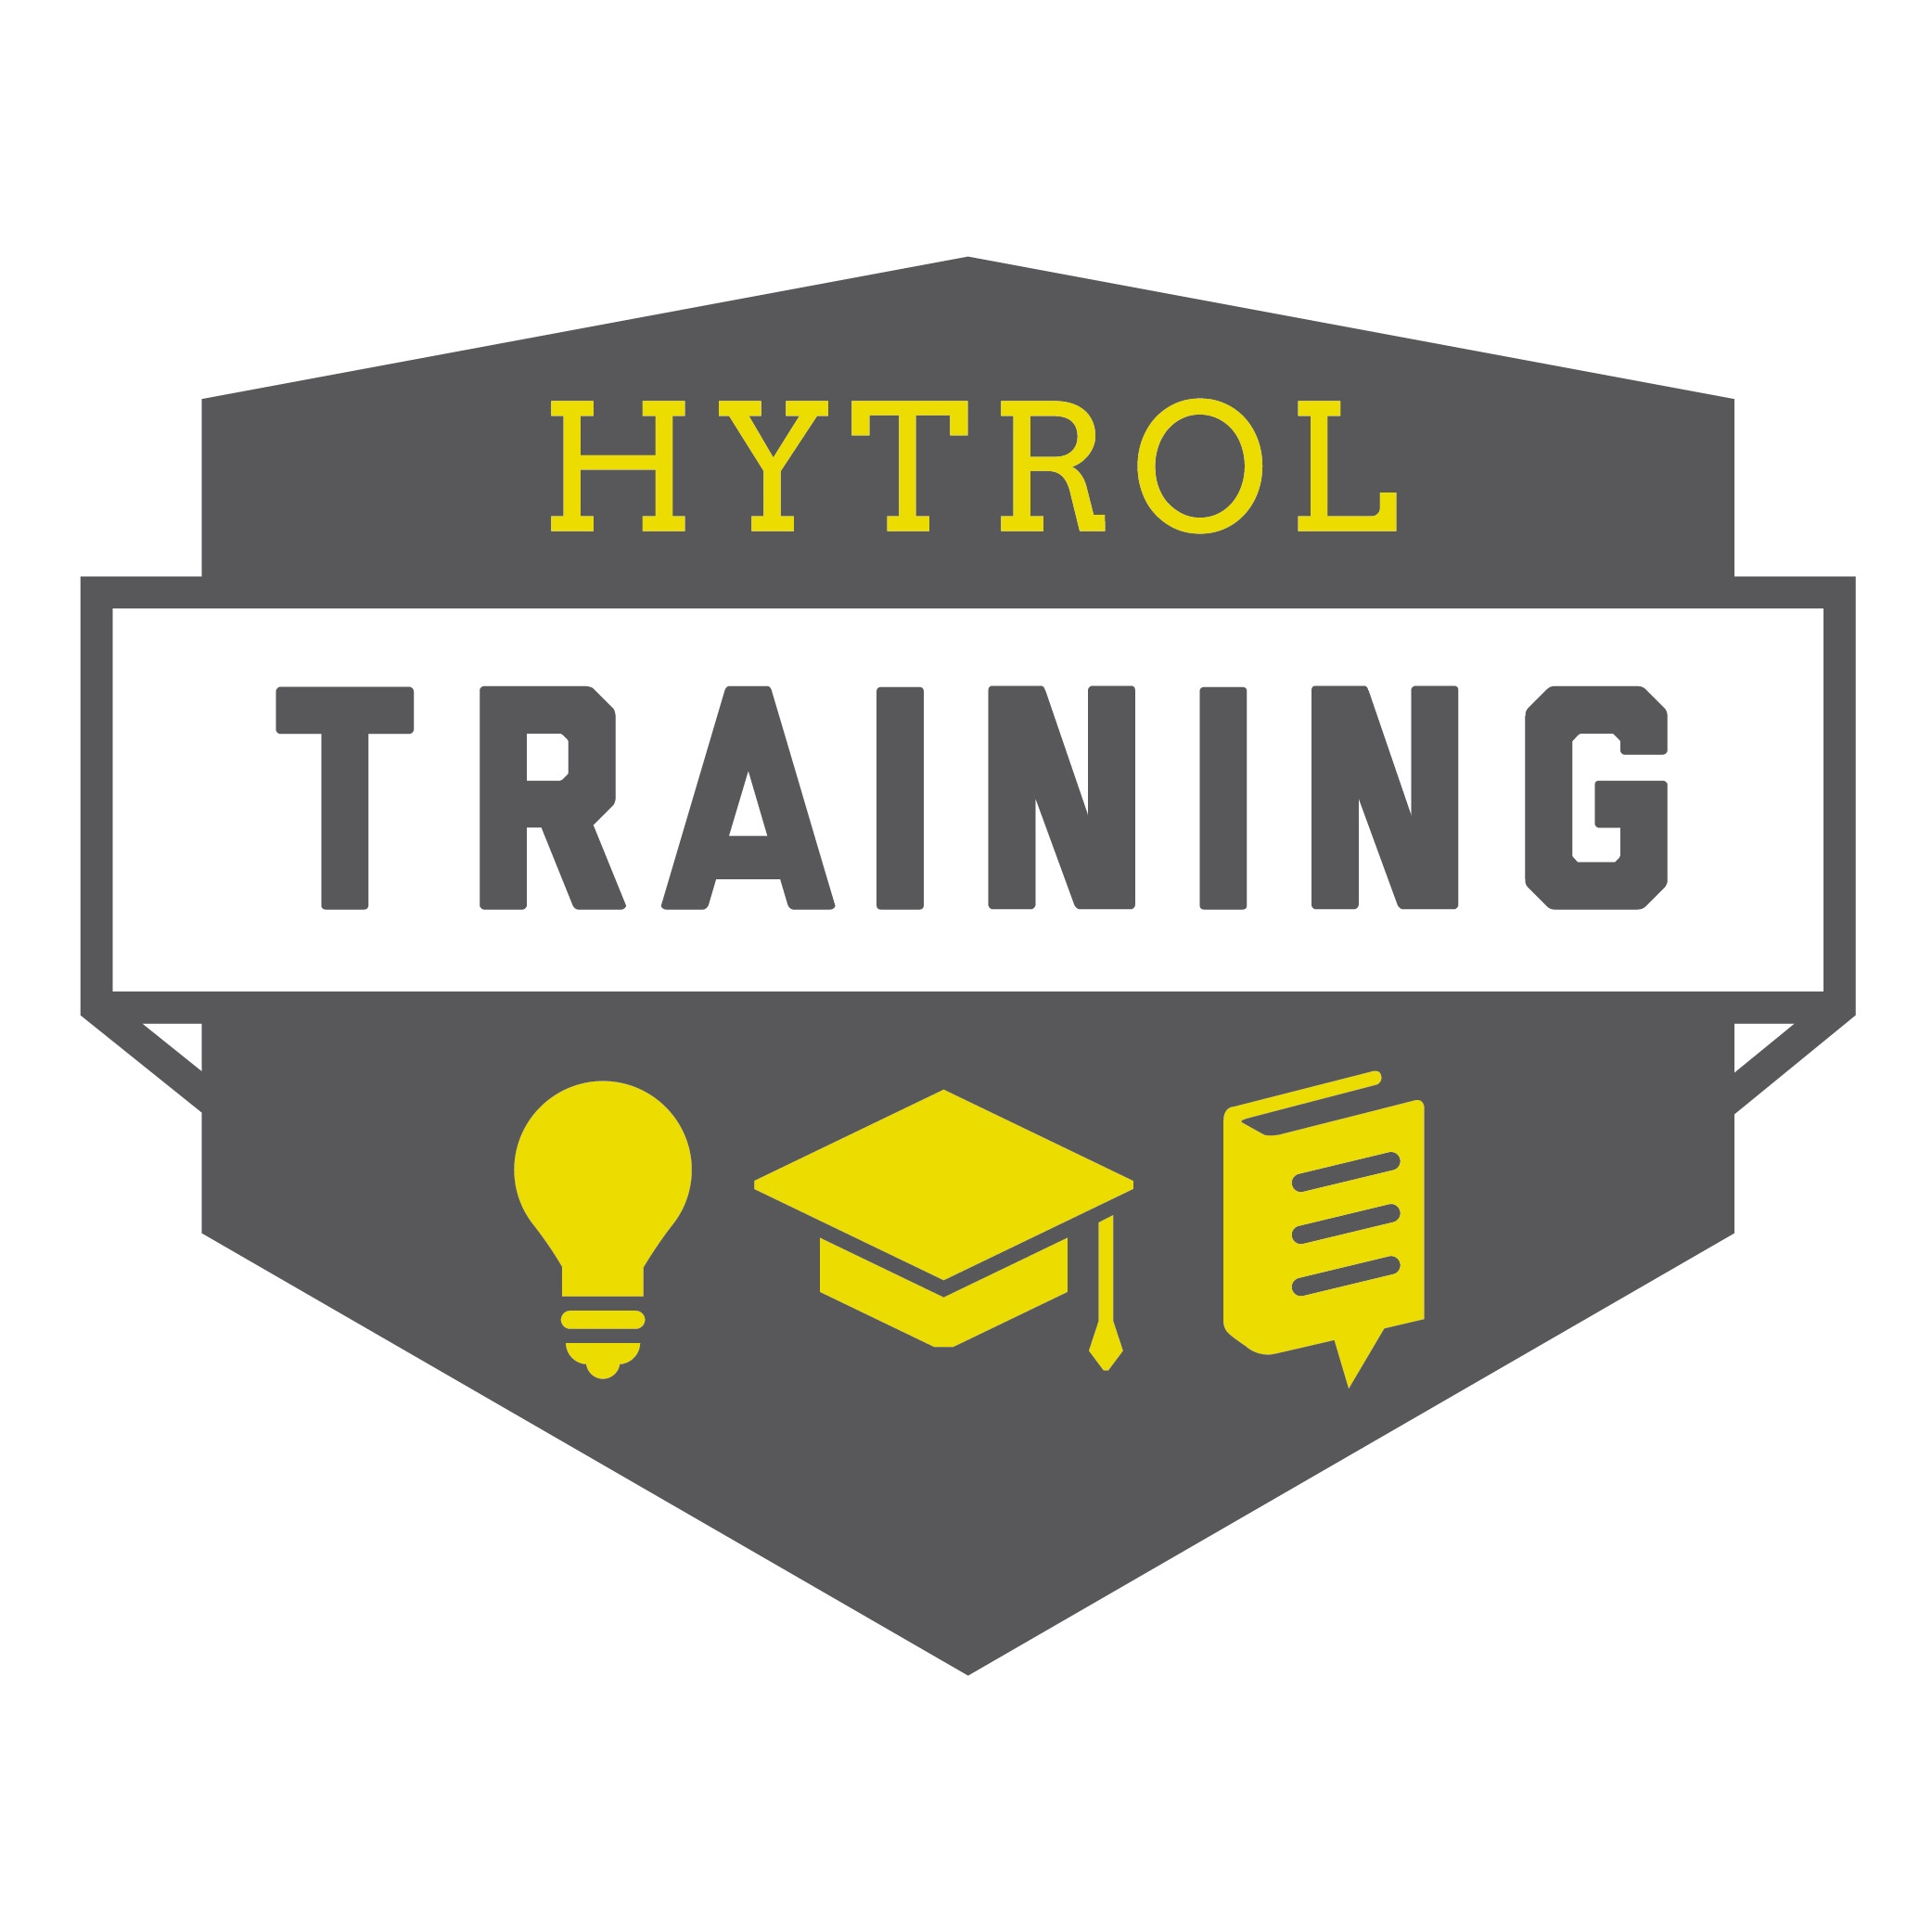 Hytrol Training